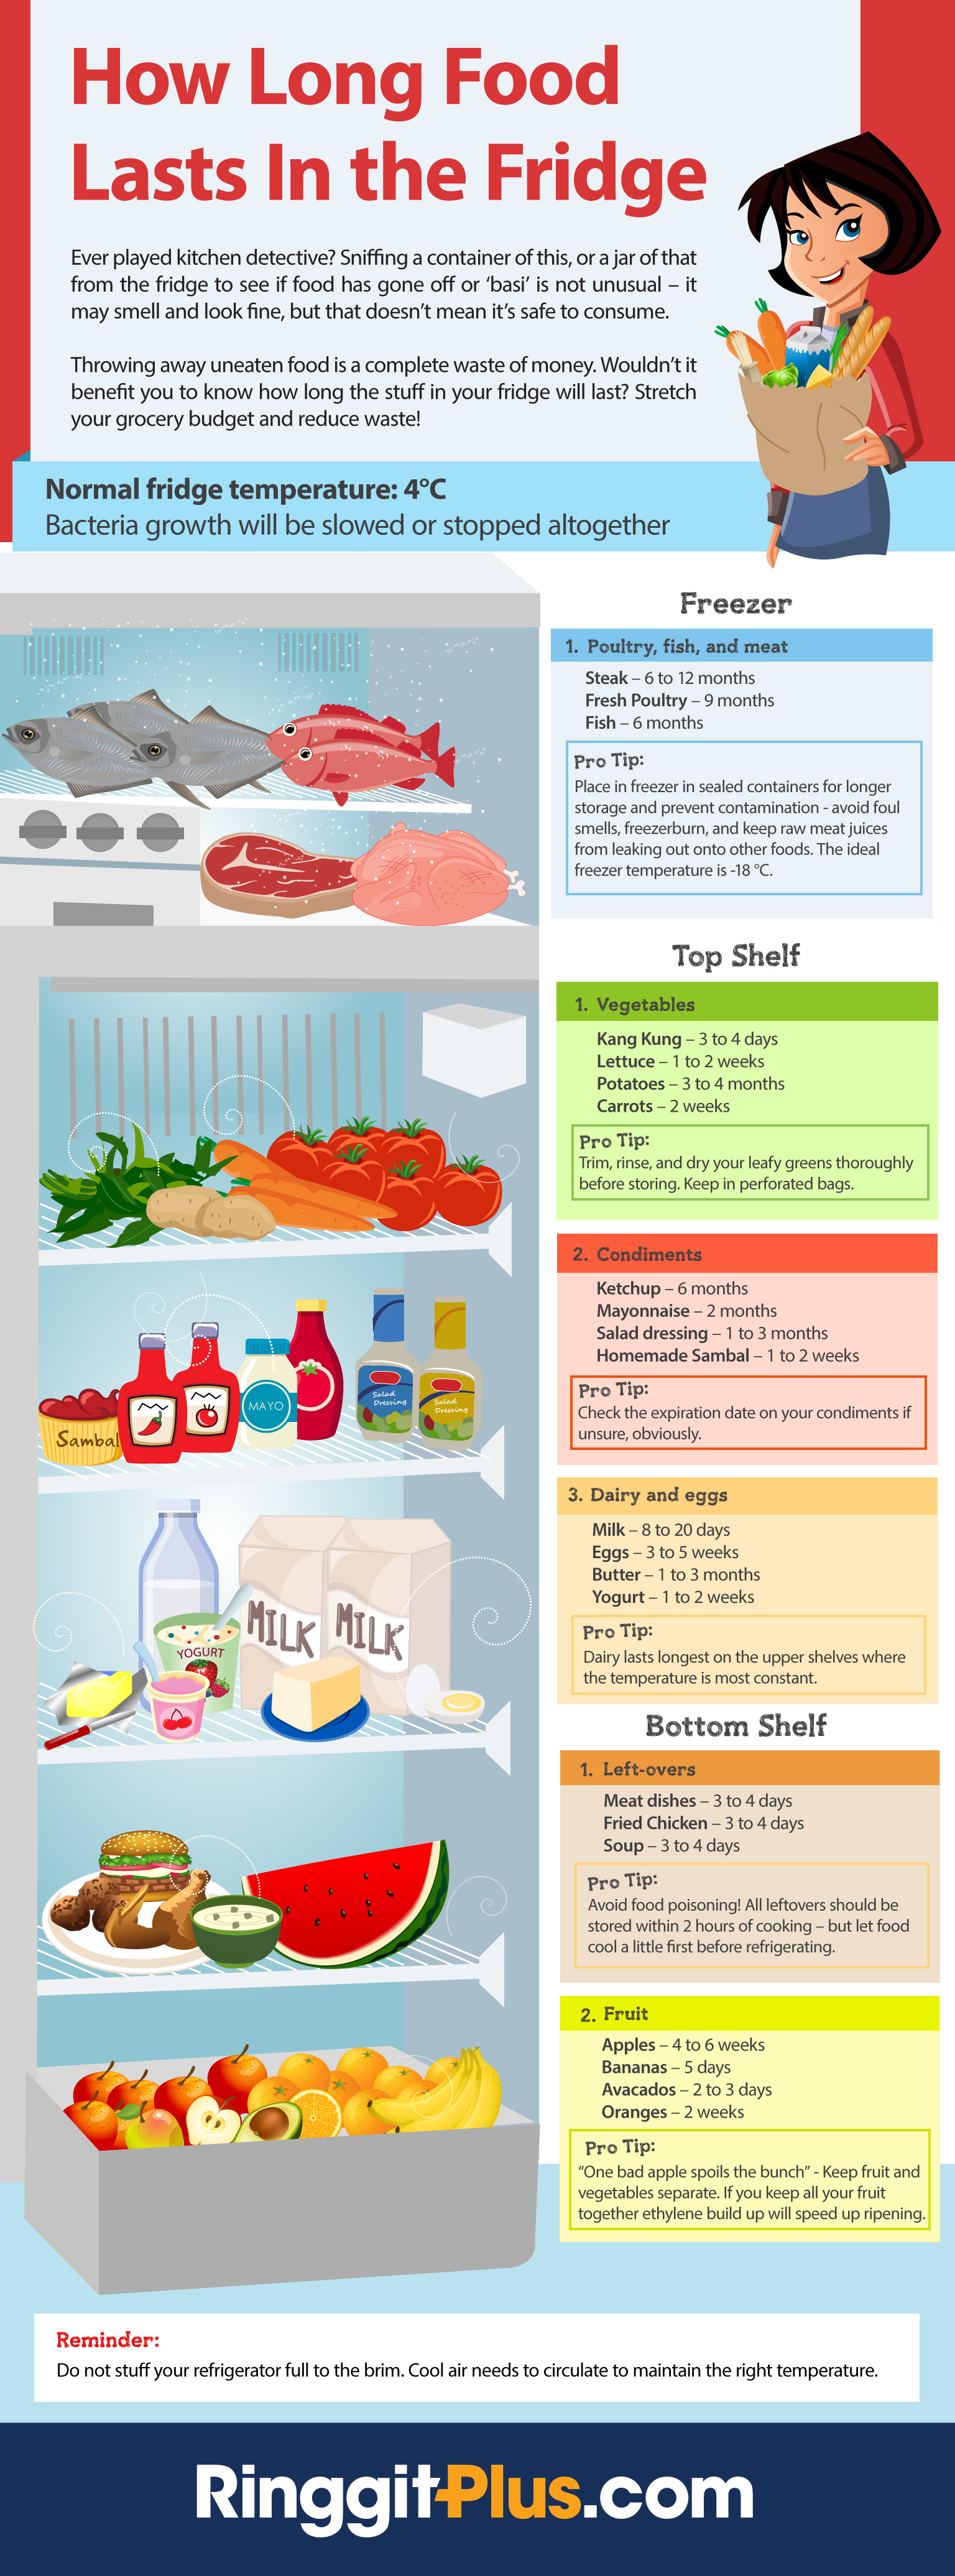 [Infographic] How Long Does Your Food Last in the Fridge?